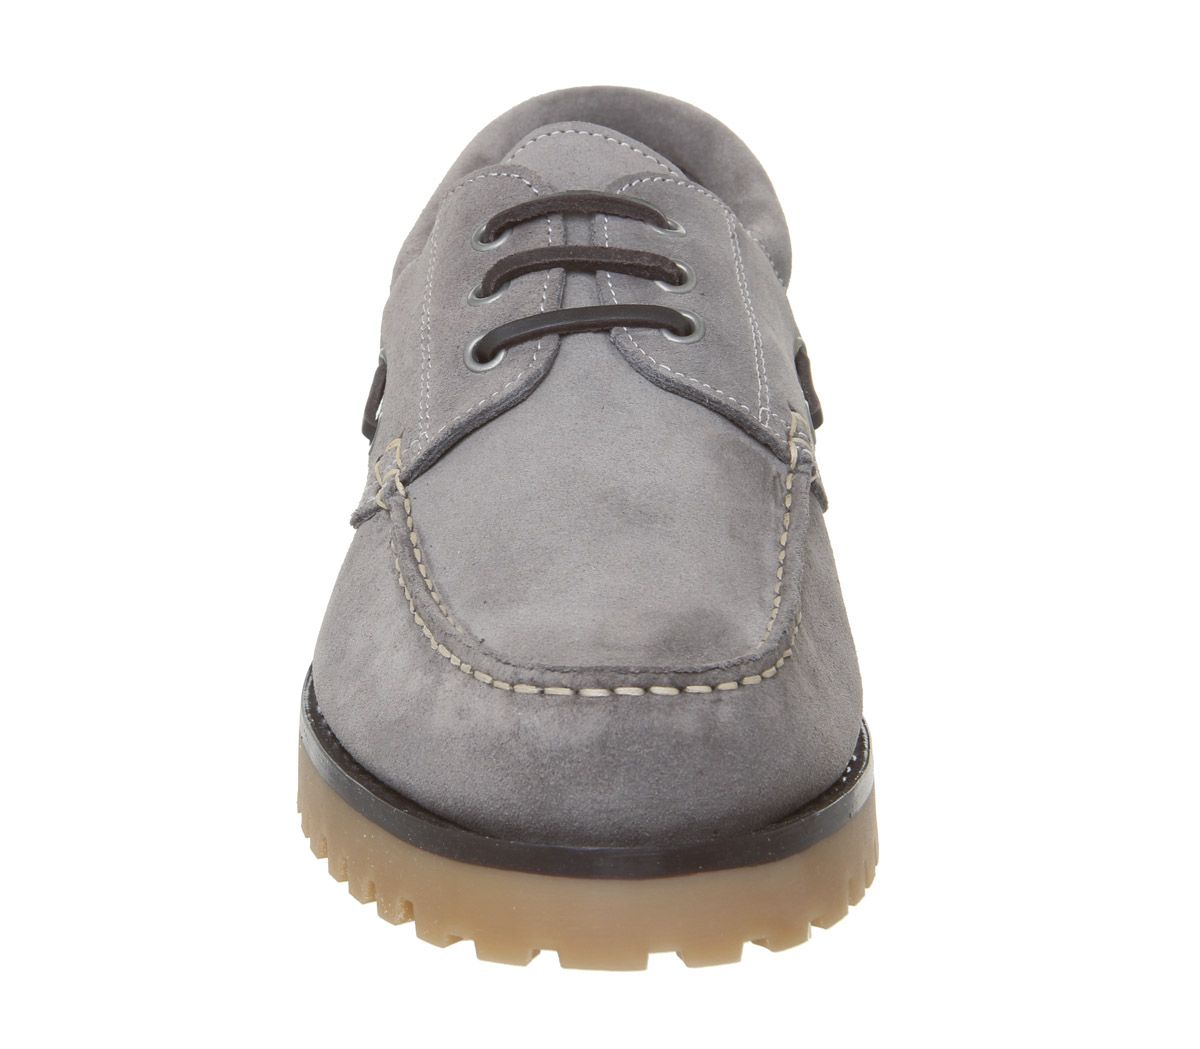 Mens-Office-Lug-Boat-Shoes-Grey-Suede-Casual-Shoes thumbnail 3